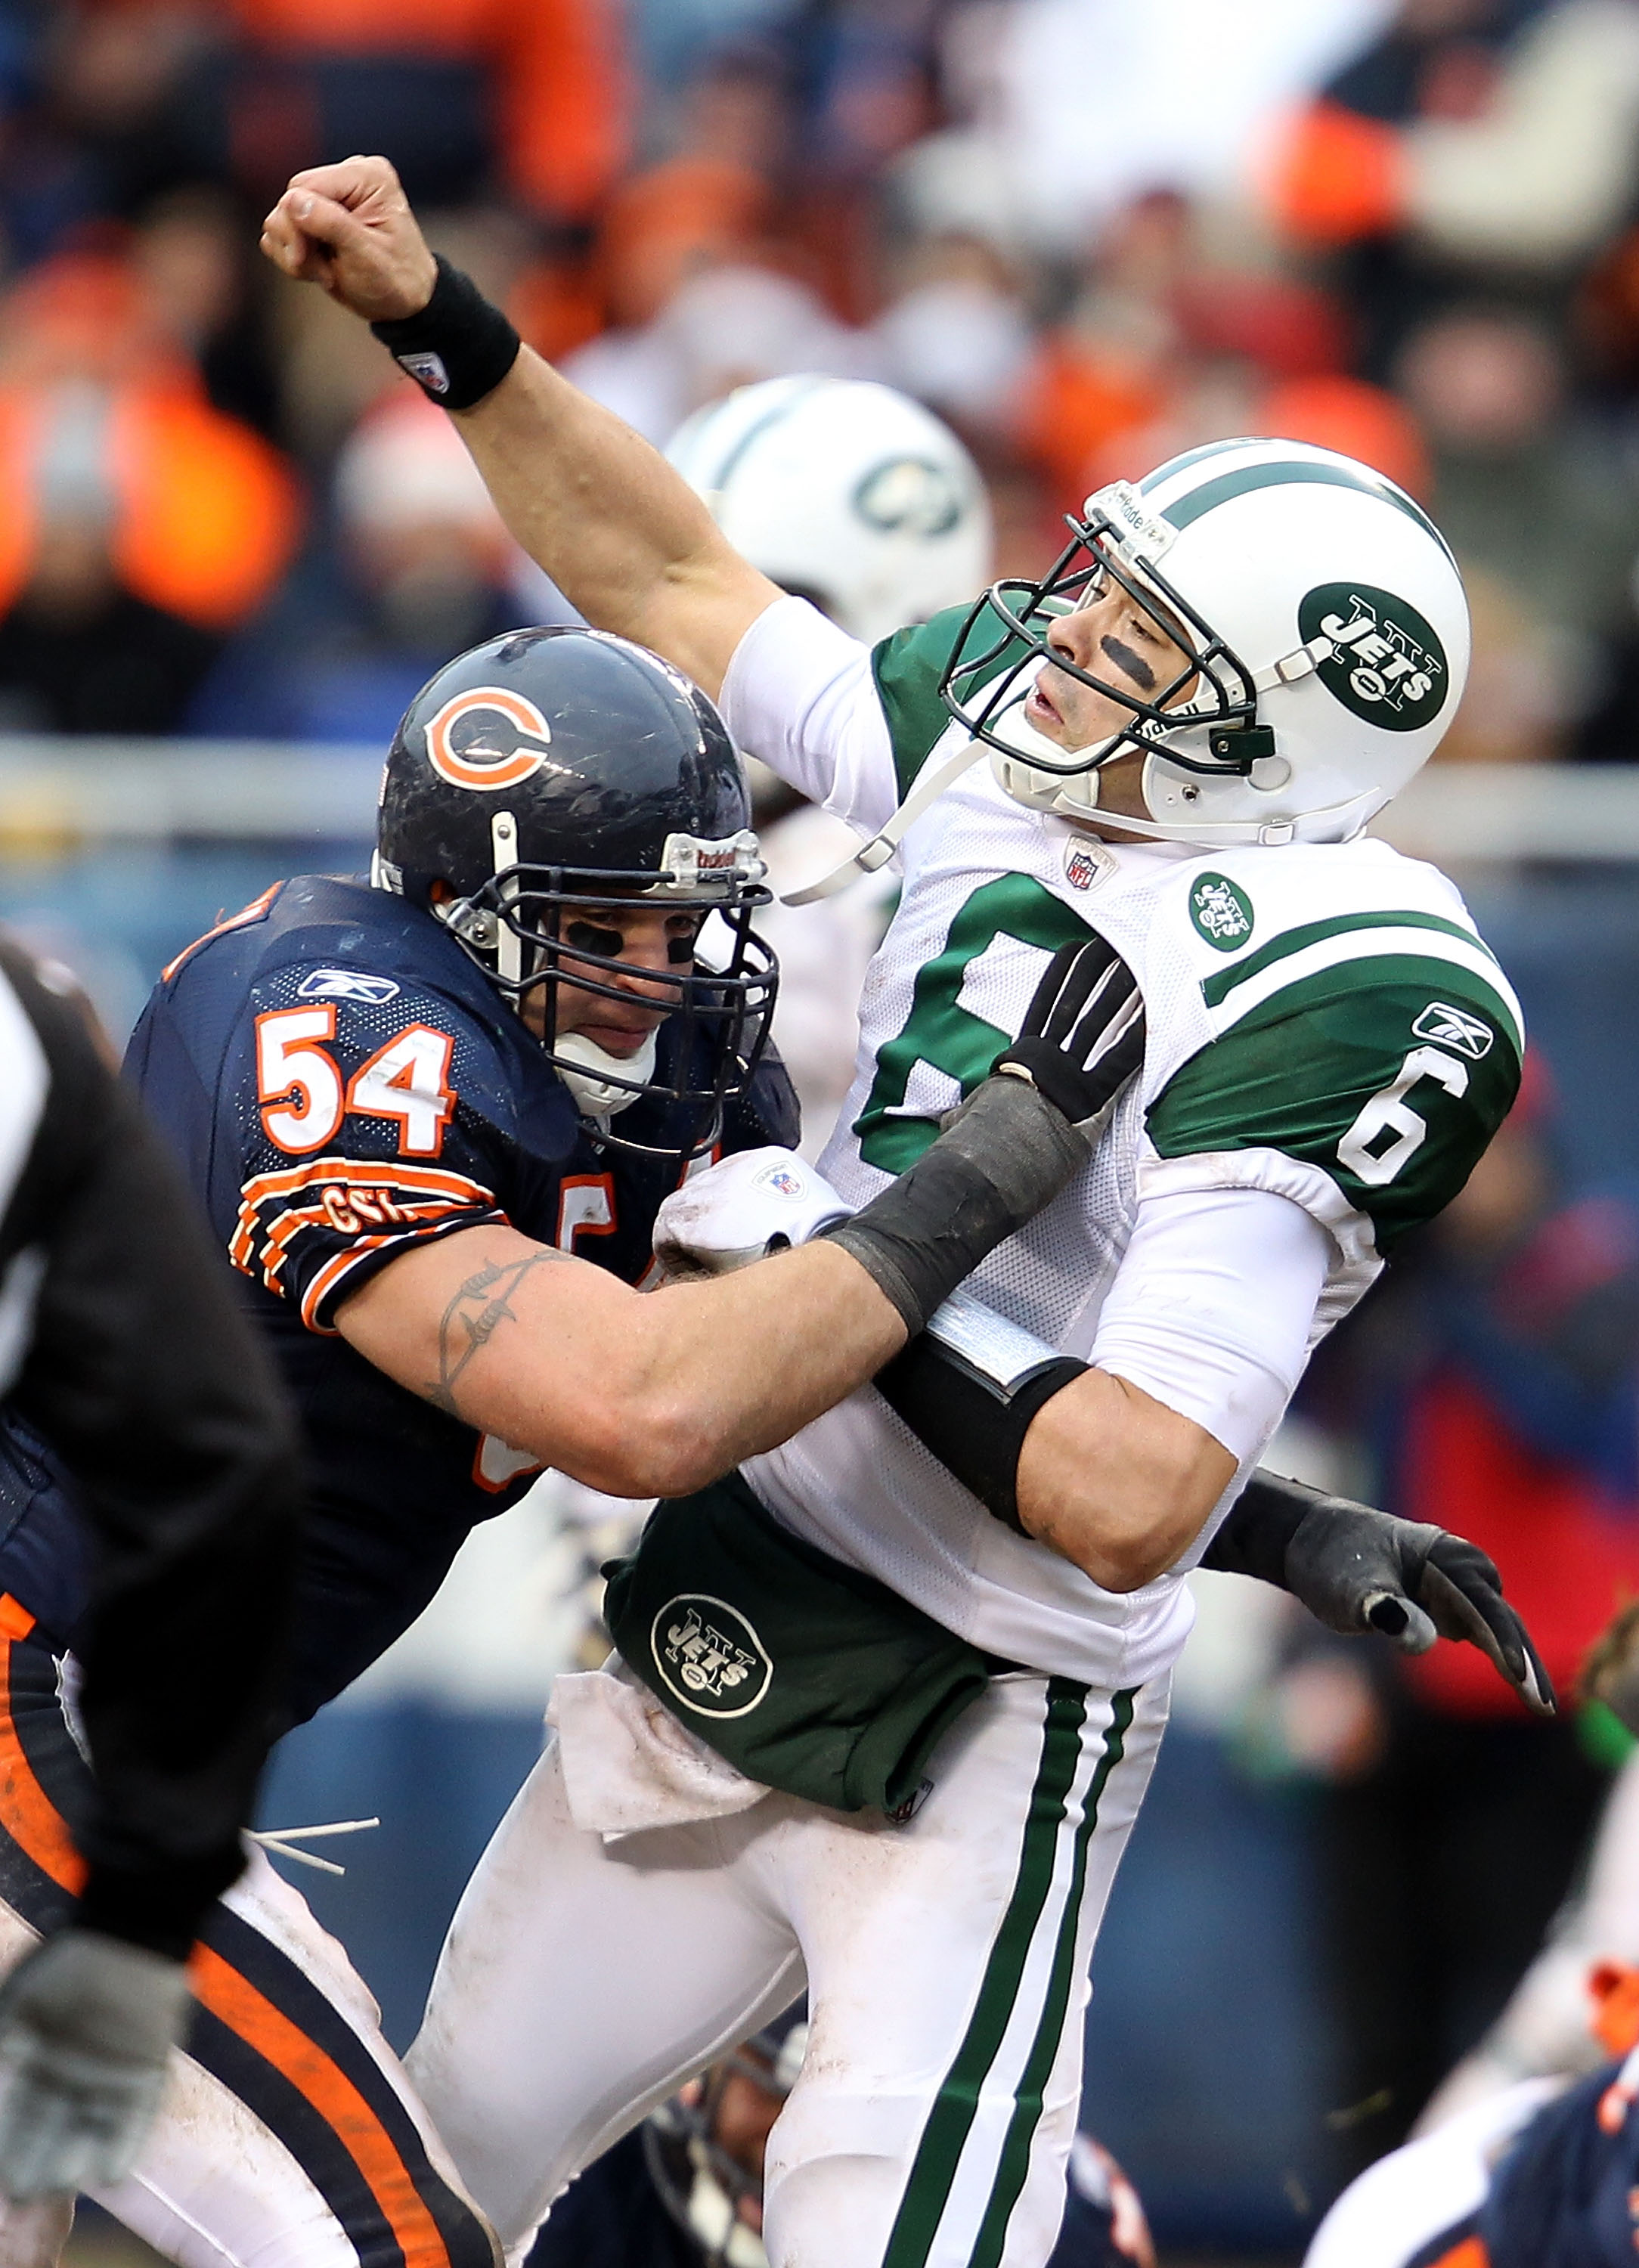 CHICAGO, IL - DECEMBER 26: Brian Urlacher #54 of the Chicago Bears hits Mark Sanchez #6 of the New York Jets at Soldier Field on December 26, 2010 in Chicago, Illinois. The Bears defeated the Jets 38-34. (Photo by Jonathan Daniel/Getty Images)